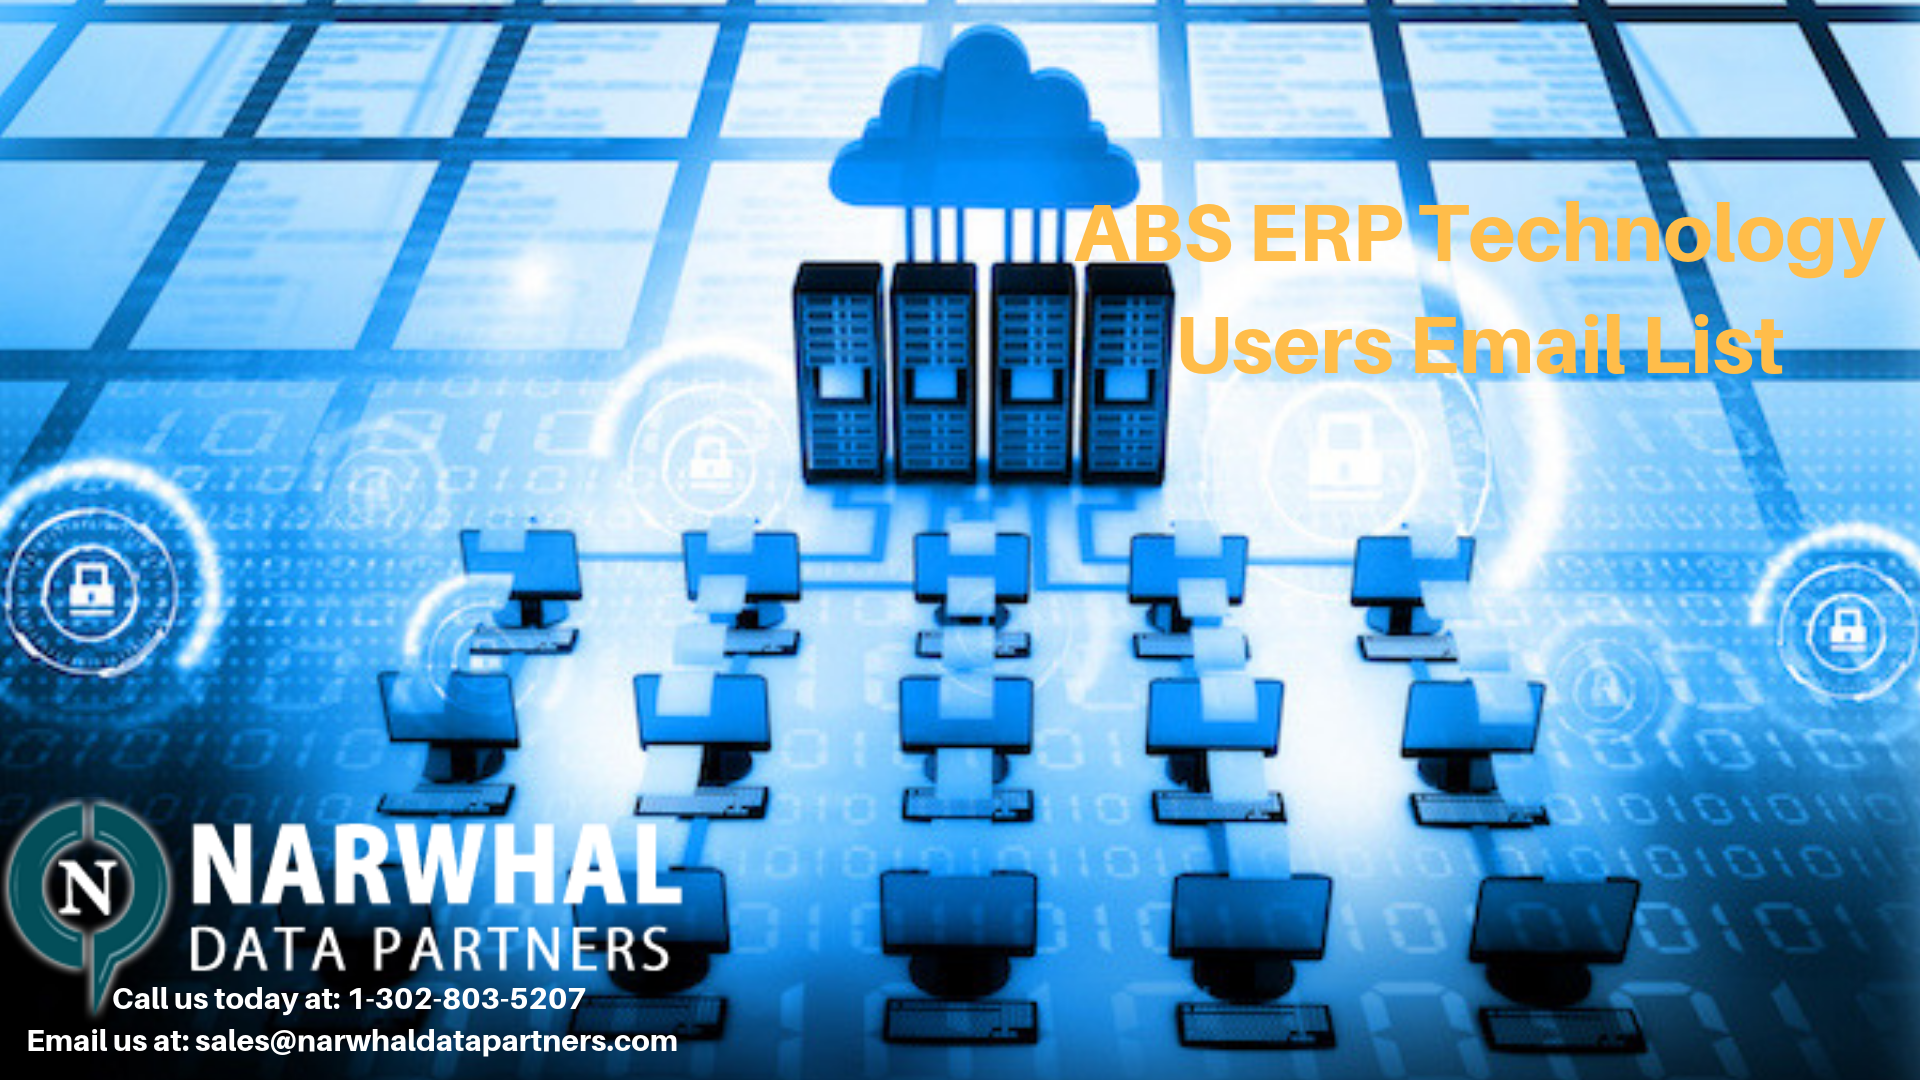 http://narwhaldatapartners.com/abs-erp-technology-users-email-list.html